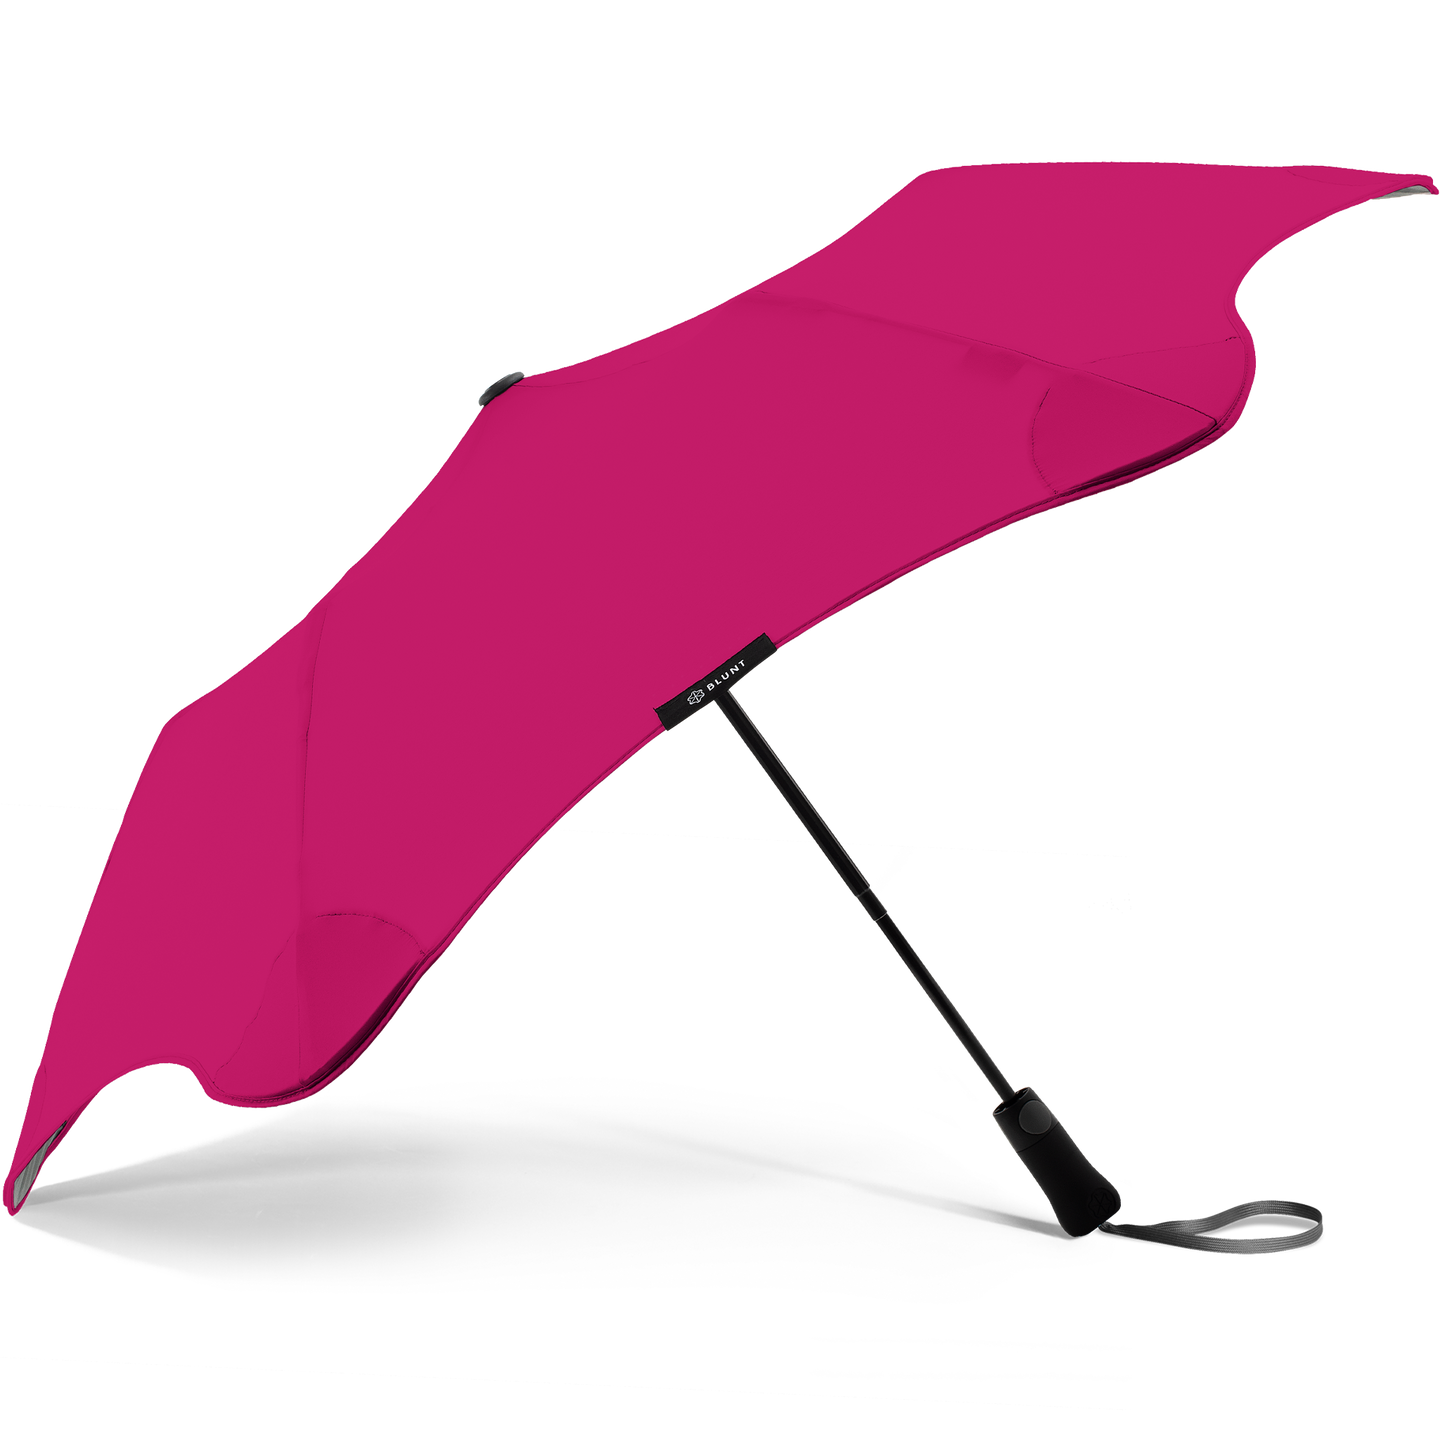 2020 Metro Pink Blunt Umbrella Side View